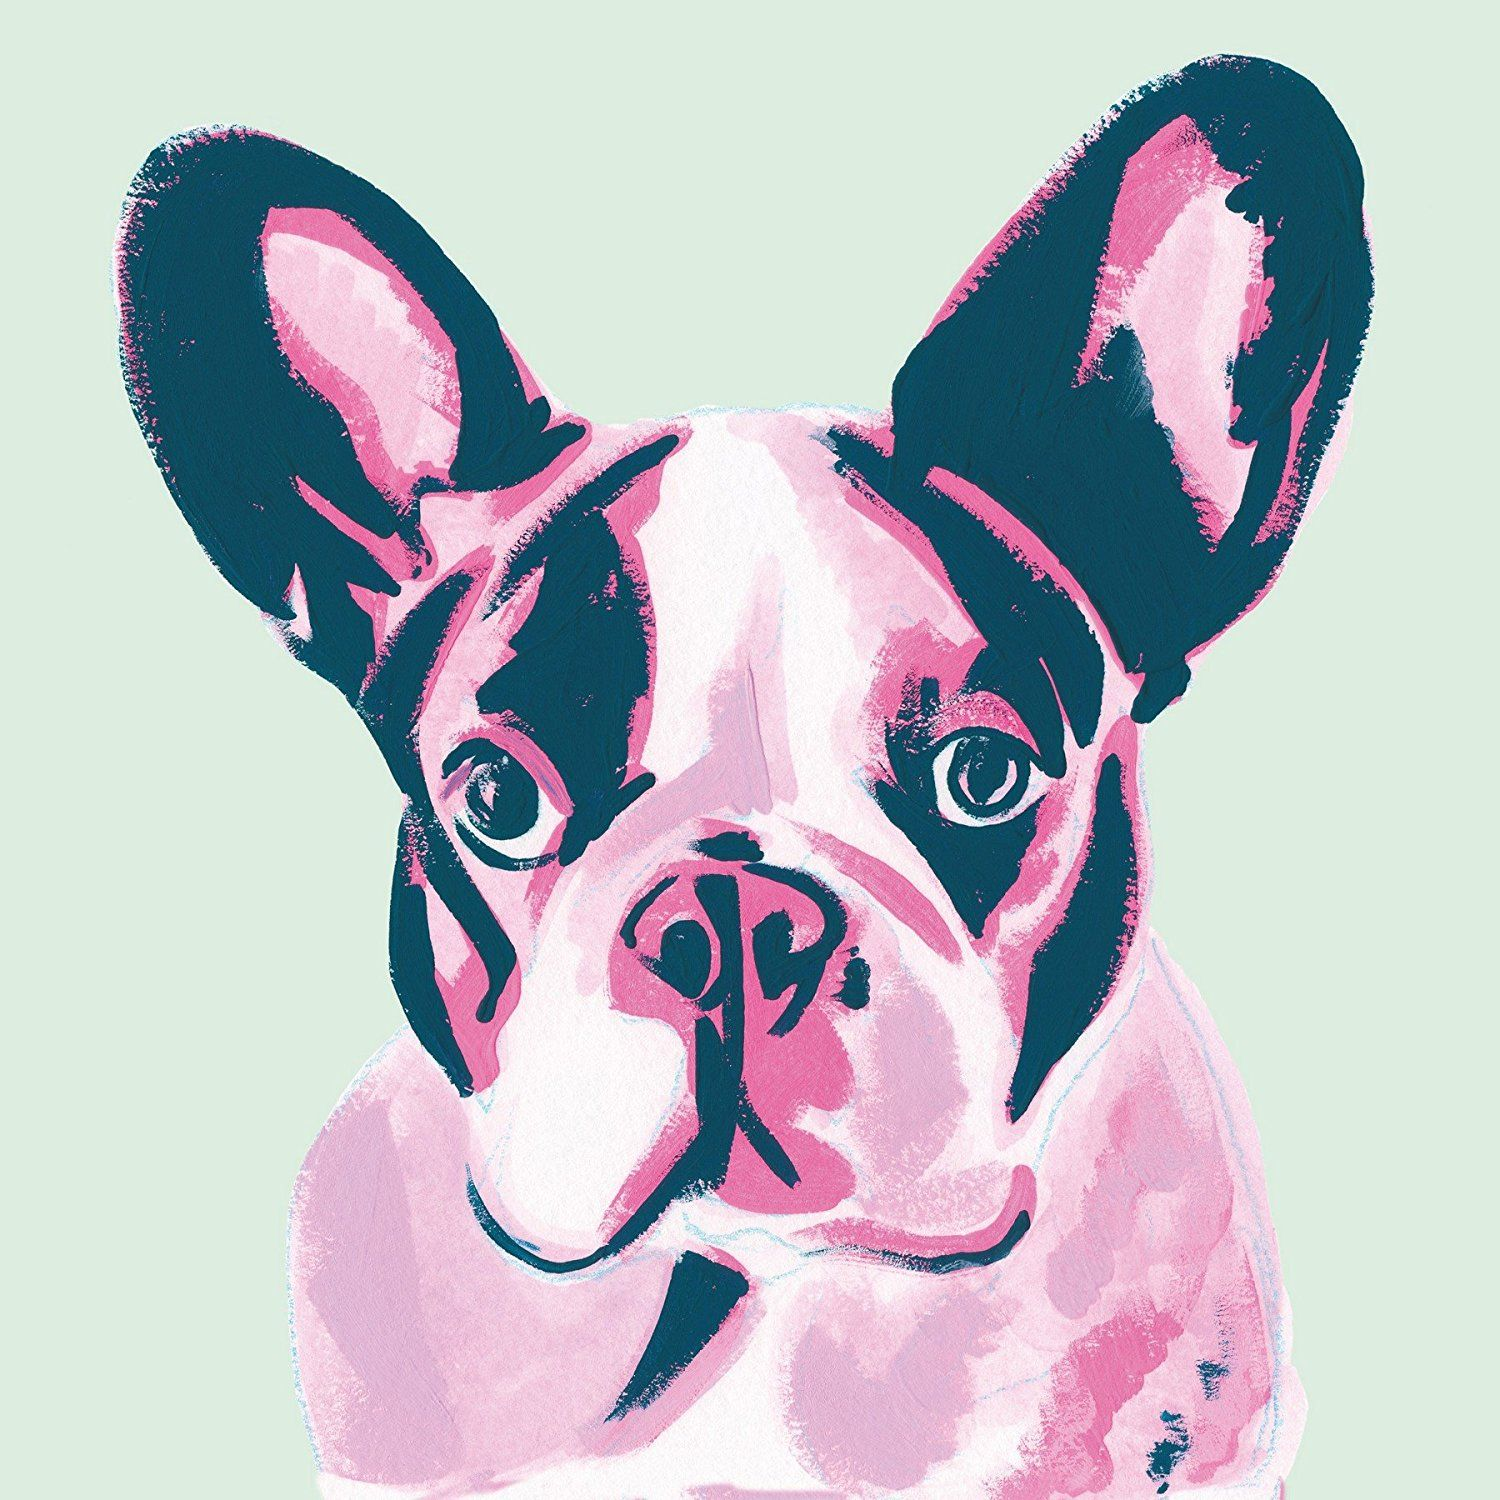 French Bulldog Pop Art Painting Inspired by Andy Warhol Painted with